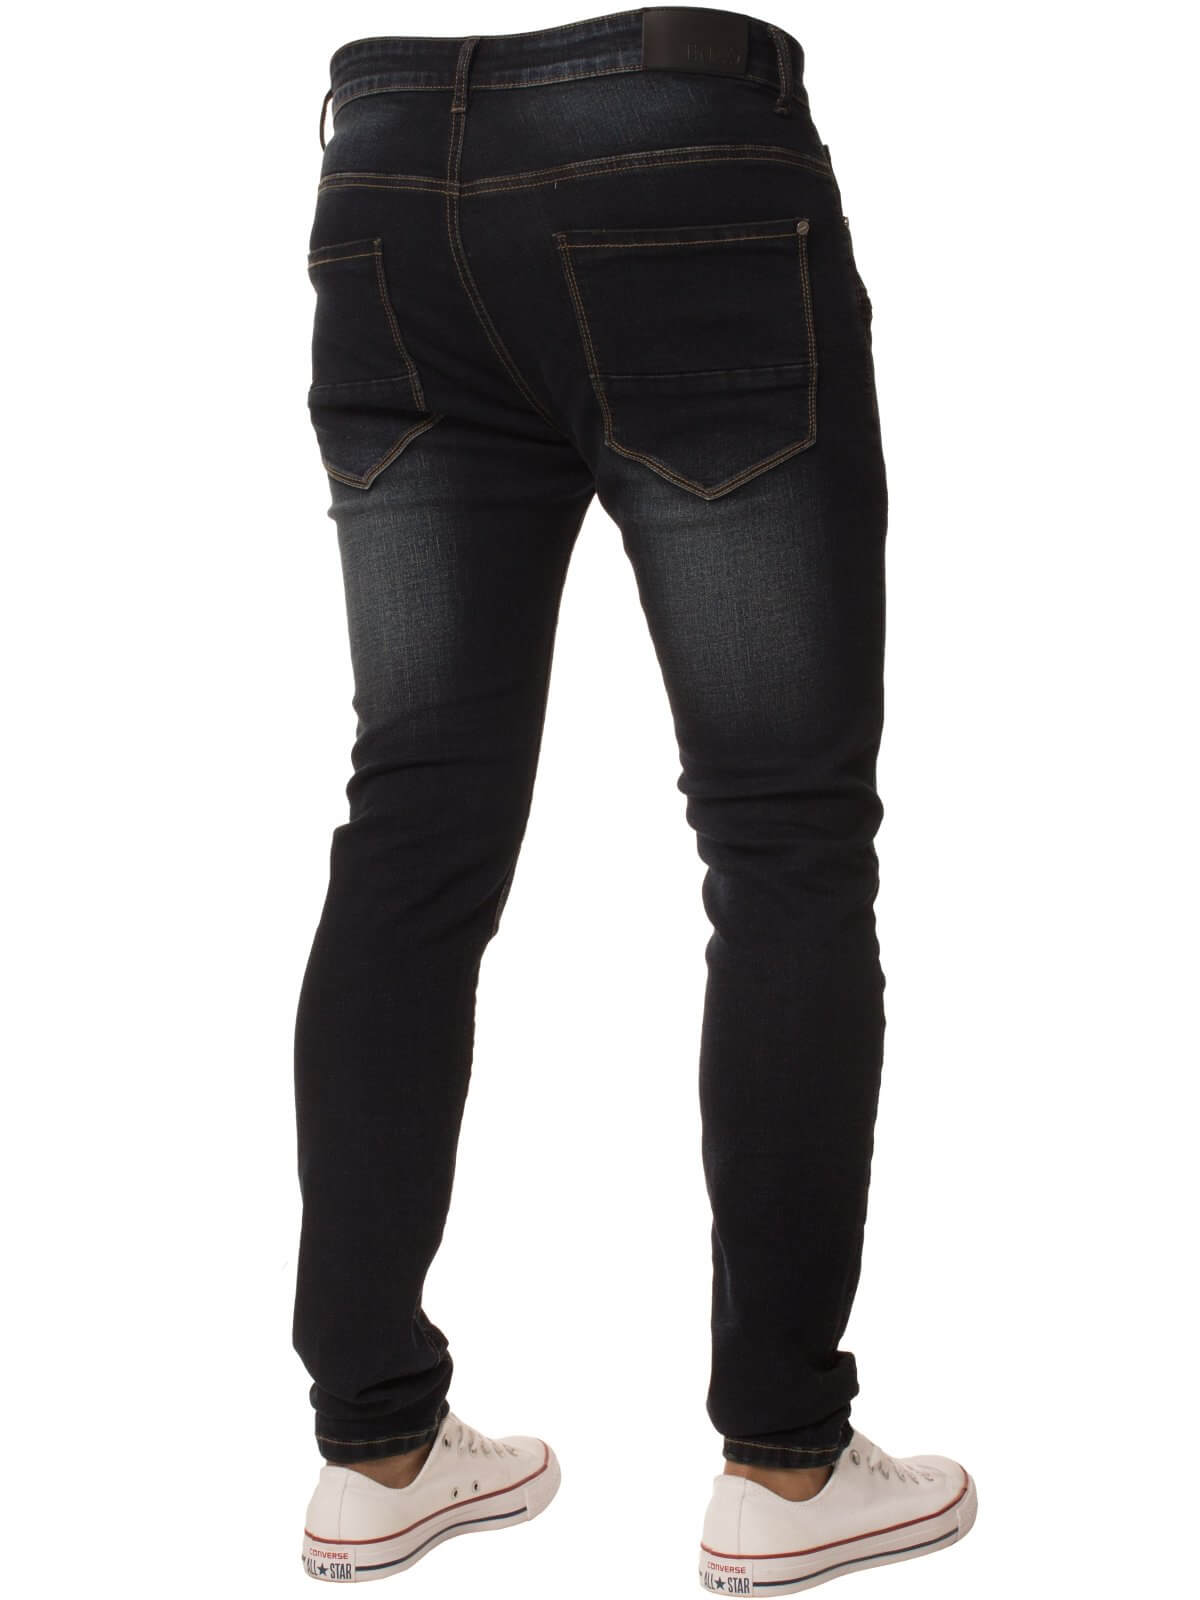 Clearance | Mens Super Skinny Stretch Ripped Denim Jeans | Enzo Designer Menswear